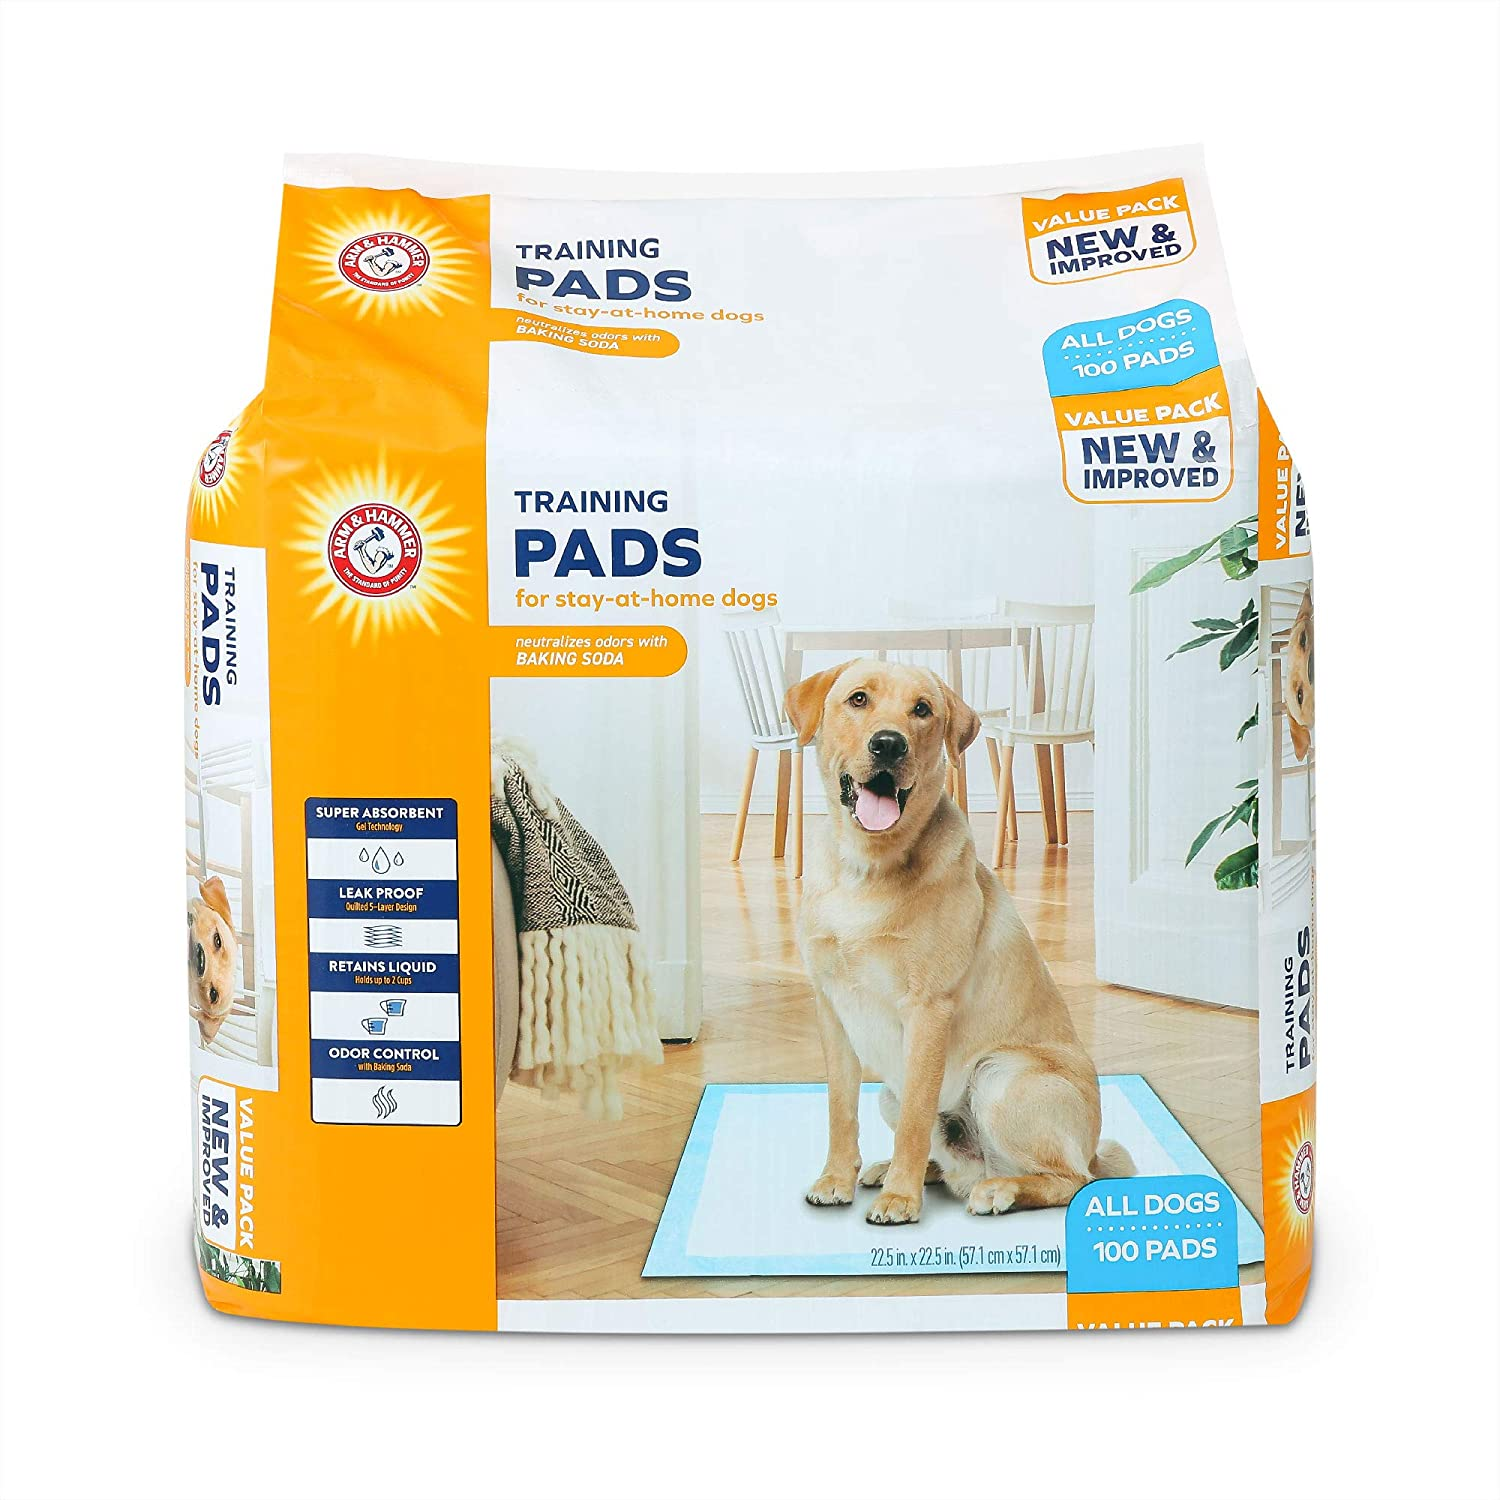 Arm & Hammer for Dogs Puppy Training Pads with Attractant | New & Improved Super Absorbent